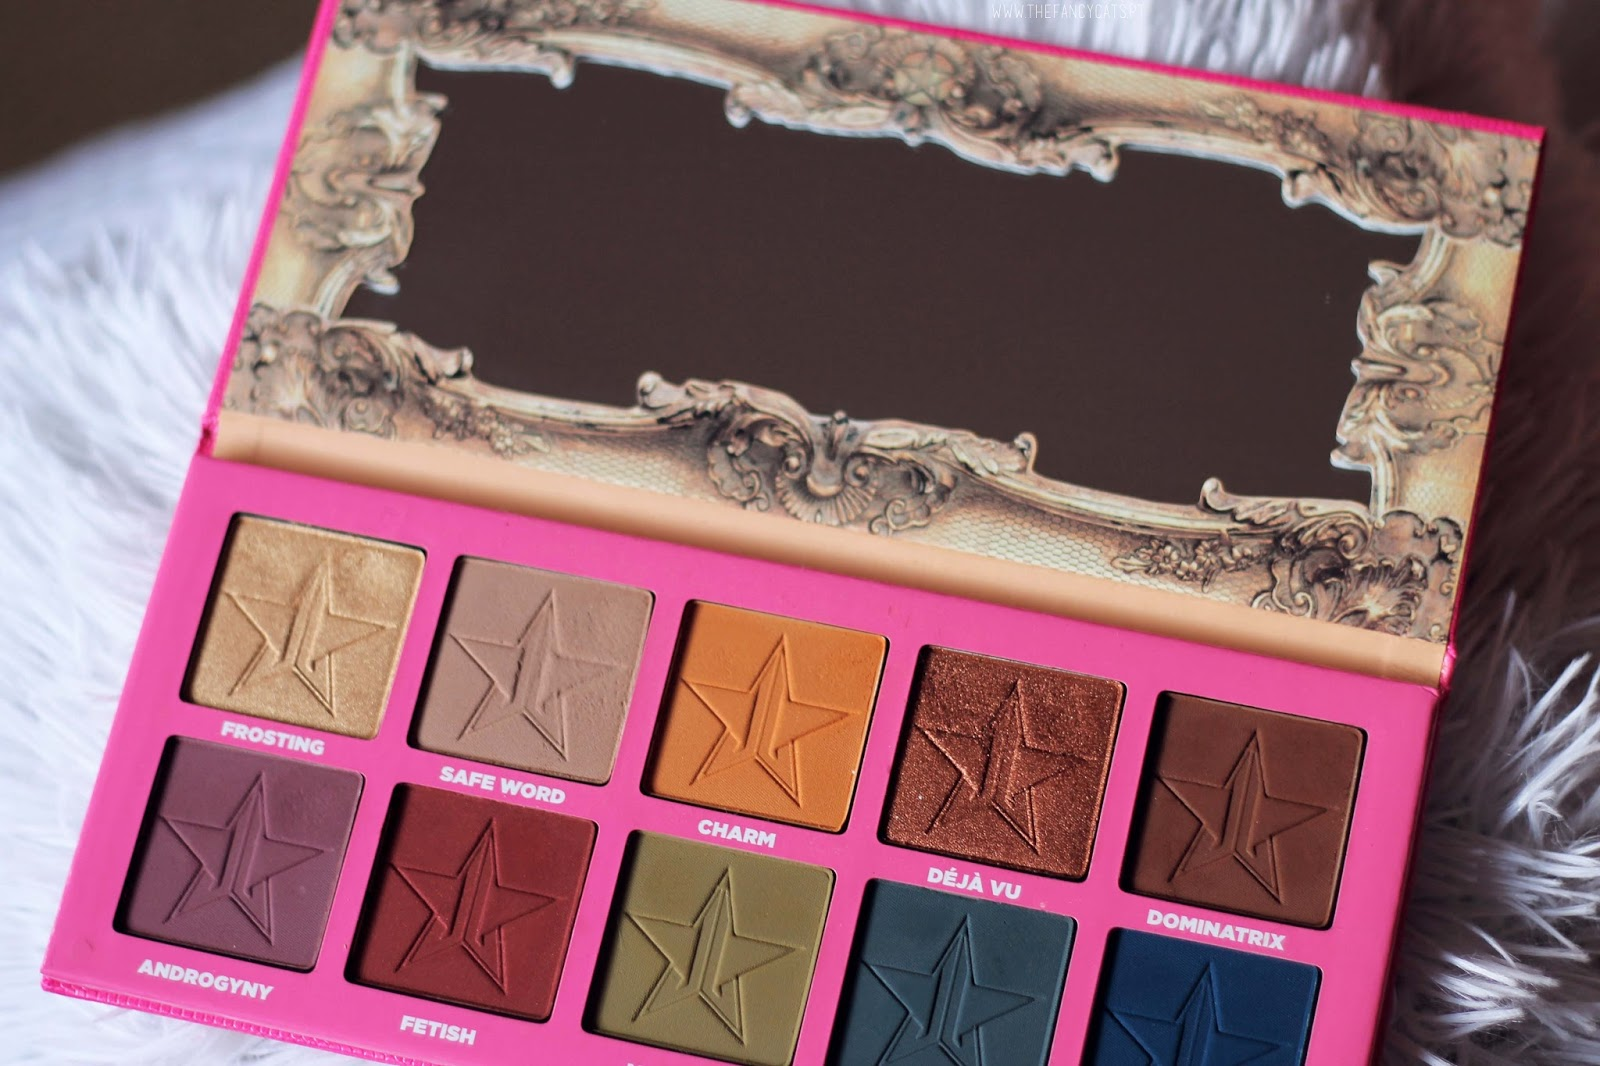 "I have this palette since July and it has become one of my favorites. Although most of the shades seem to be completely out of my typical neutrals, I use it quite regularly. In this post I'll show you swatches and talk a little about the palette in general. Like all other Jeffree Star Cosmetics products, ""Androgyny"" is vegan and cruelty-free. Click to see swatches!"